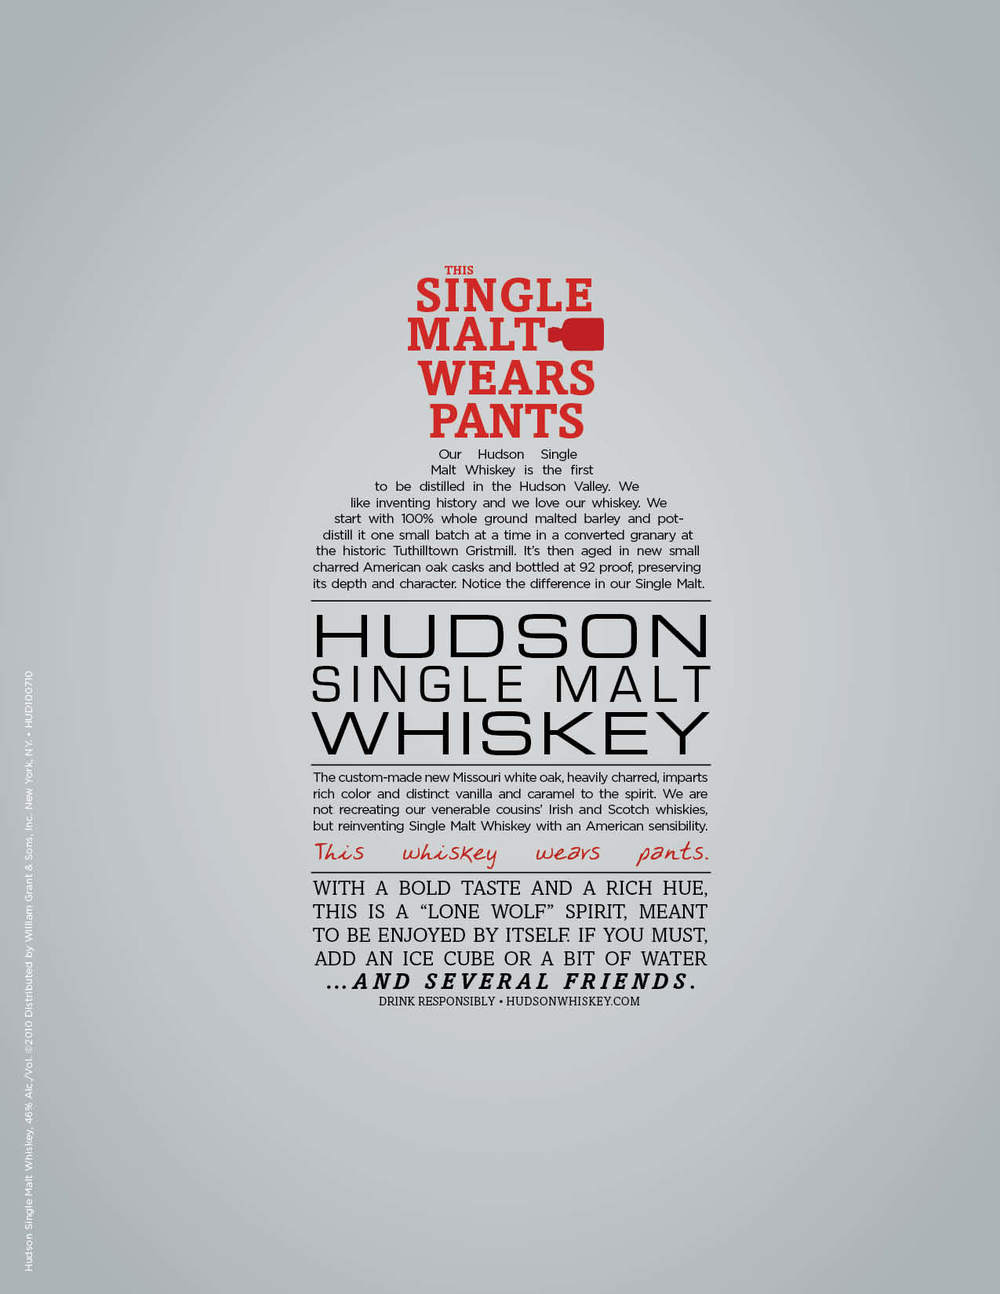 hudson-bottleicon-ads4.jpg